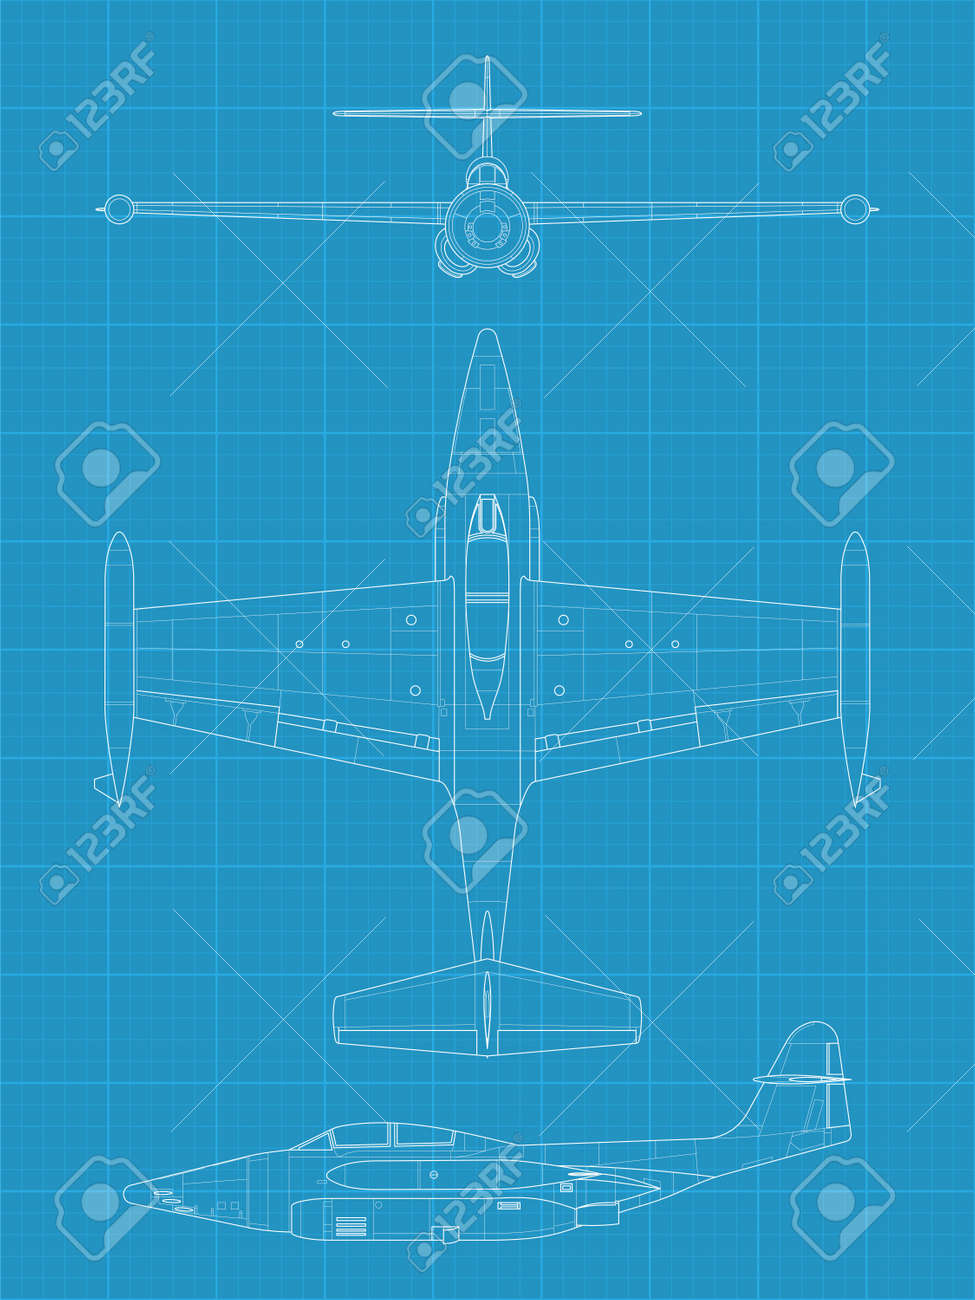 high detailed vector illustration of old military airplane - top,front and side view Stock Vector - 17982465